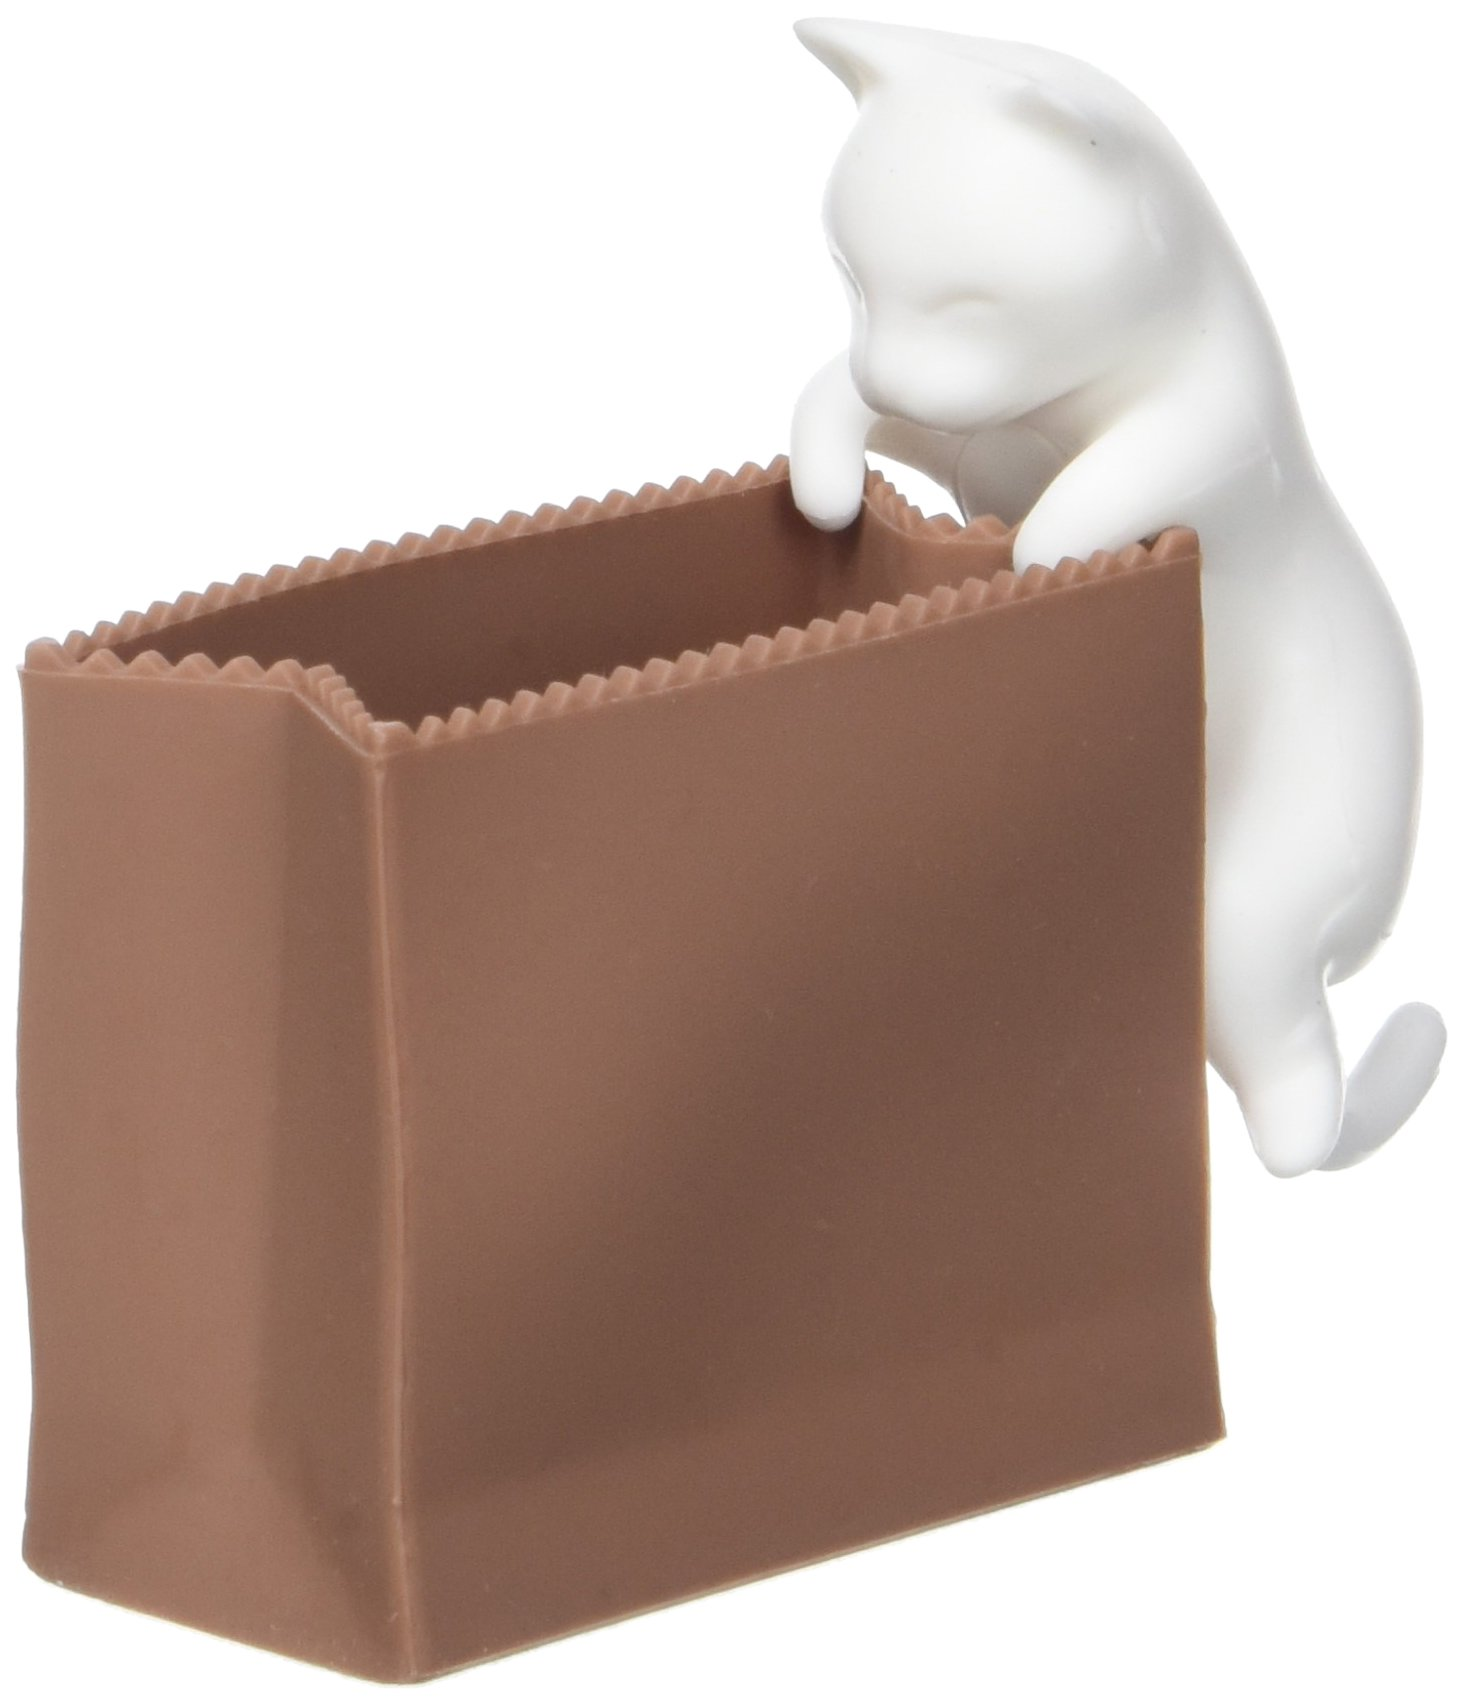 Hikali 4260348474116 Cat and Bag Paper Clip Holder by Hikali